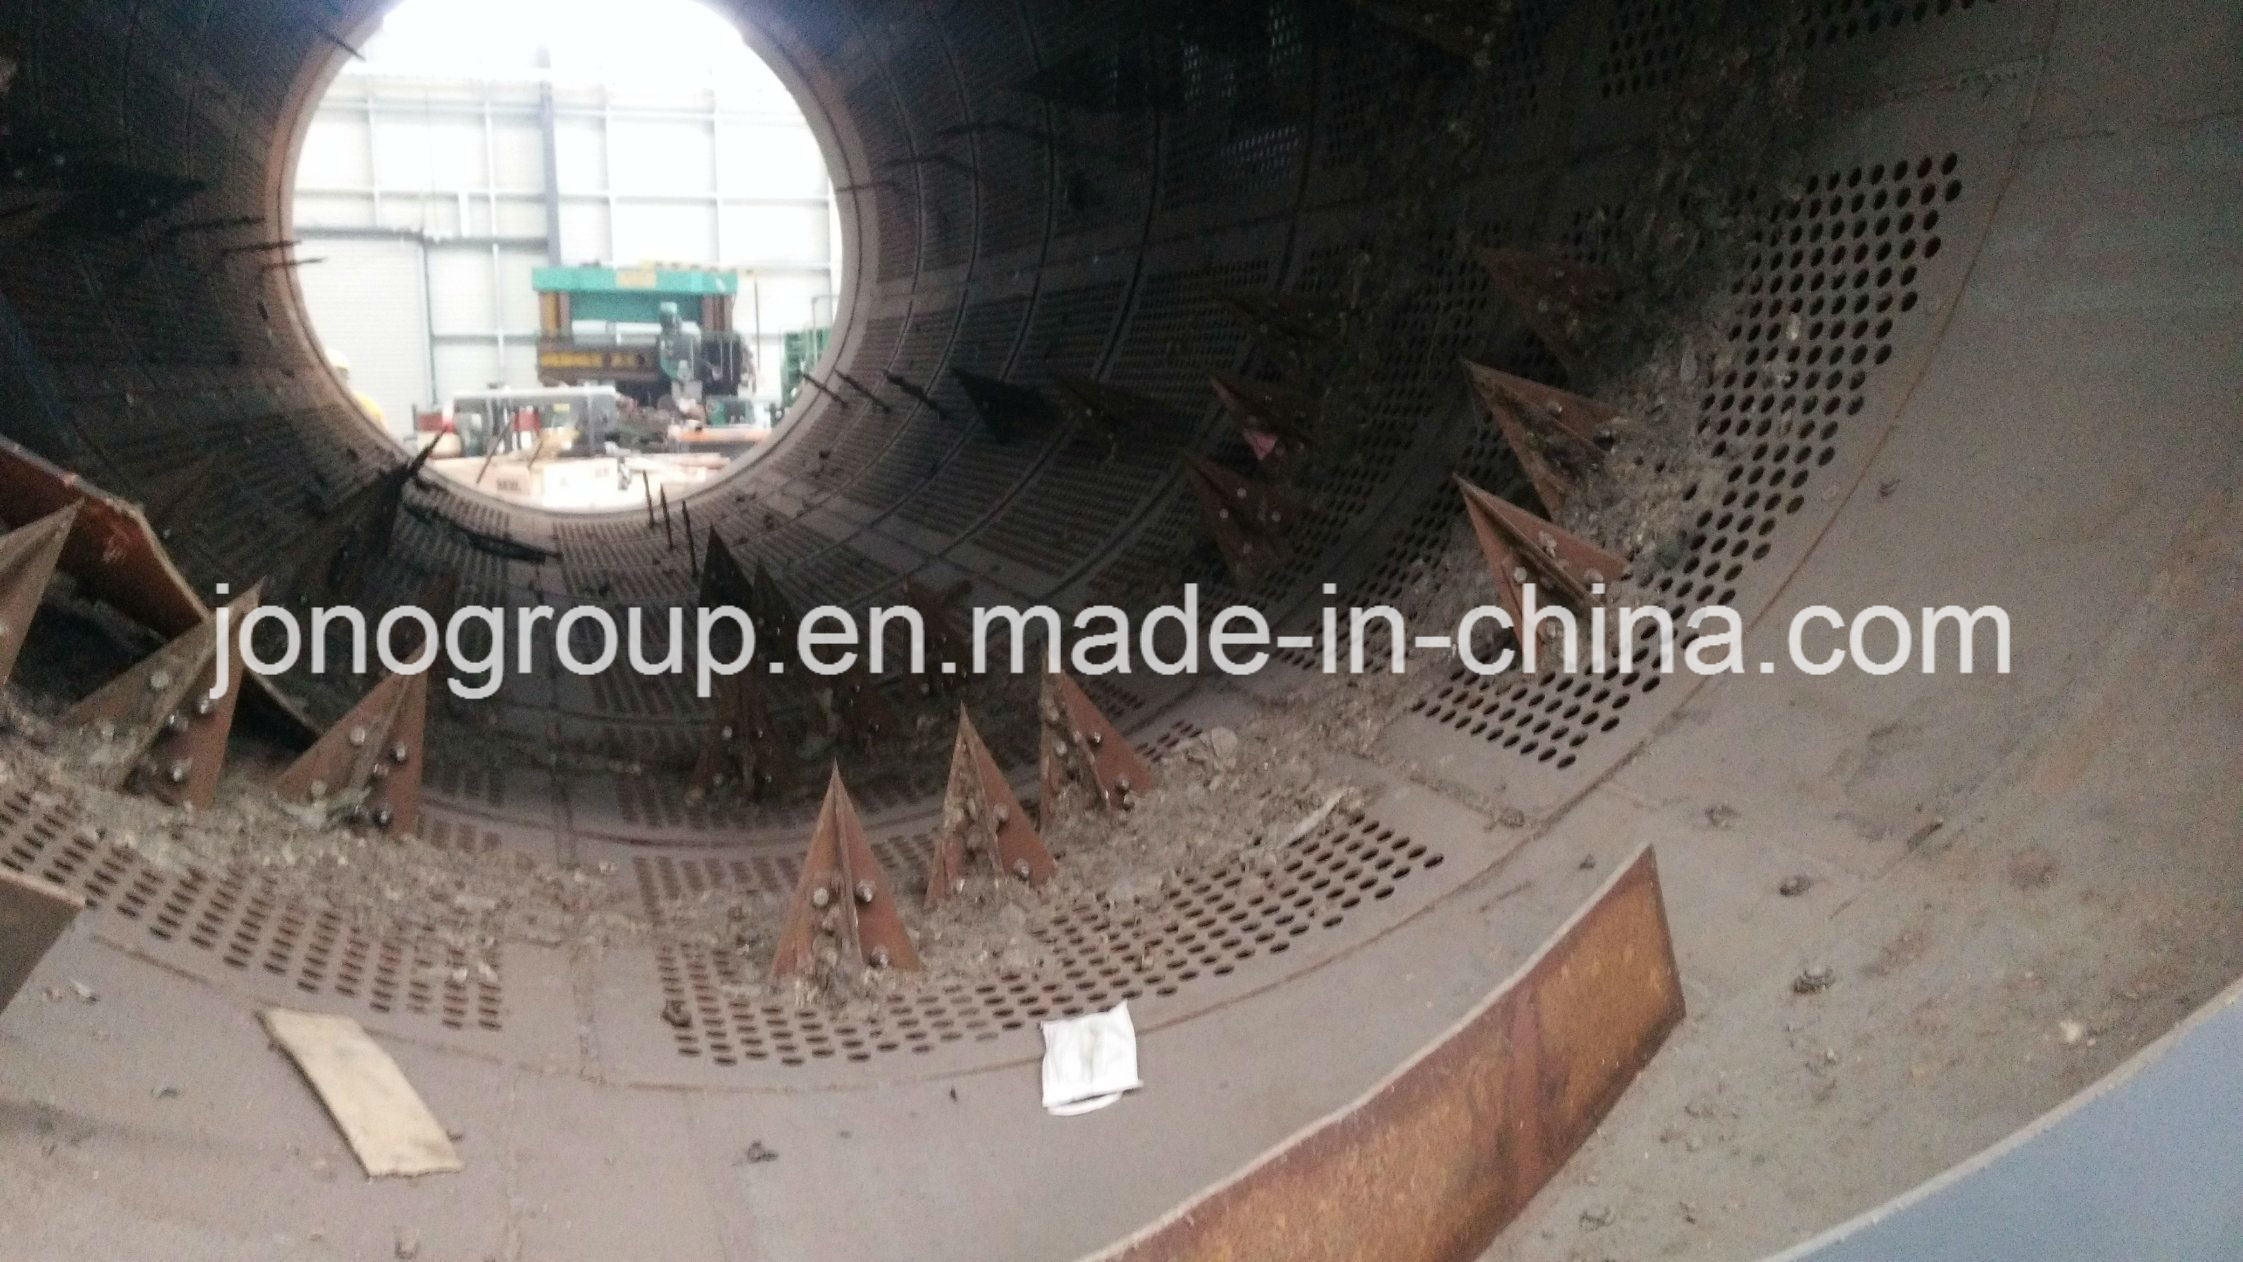 1hsd1712A Trommel Screen (rotary drum screen) for Metal Recycling/Msw